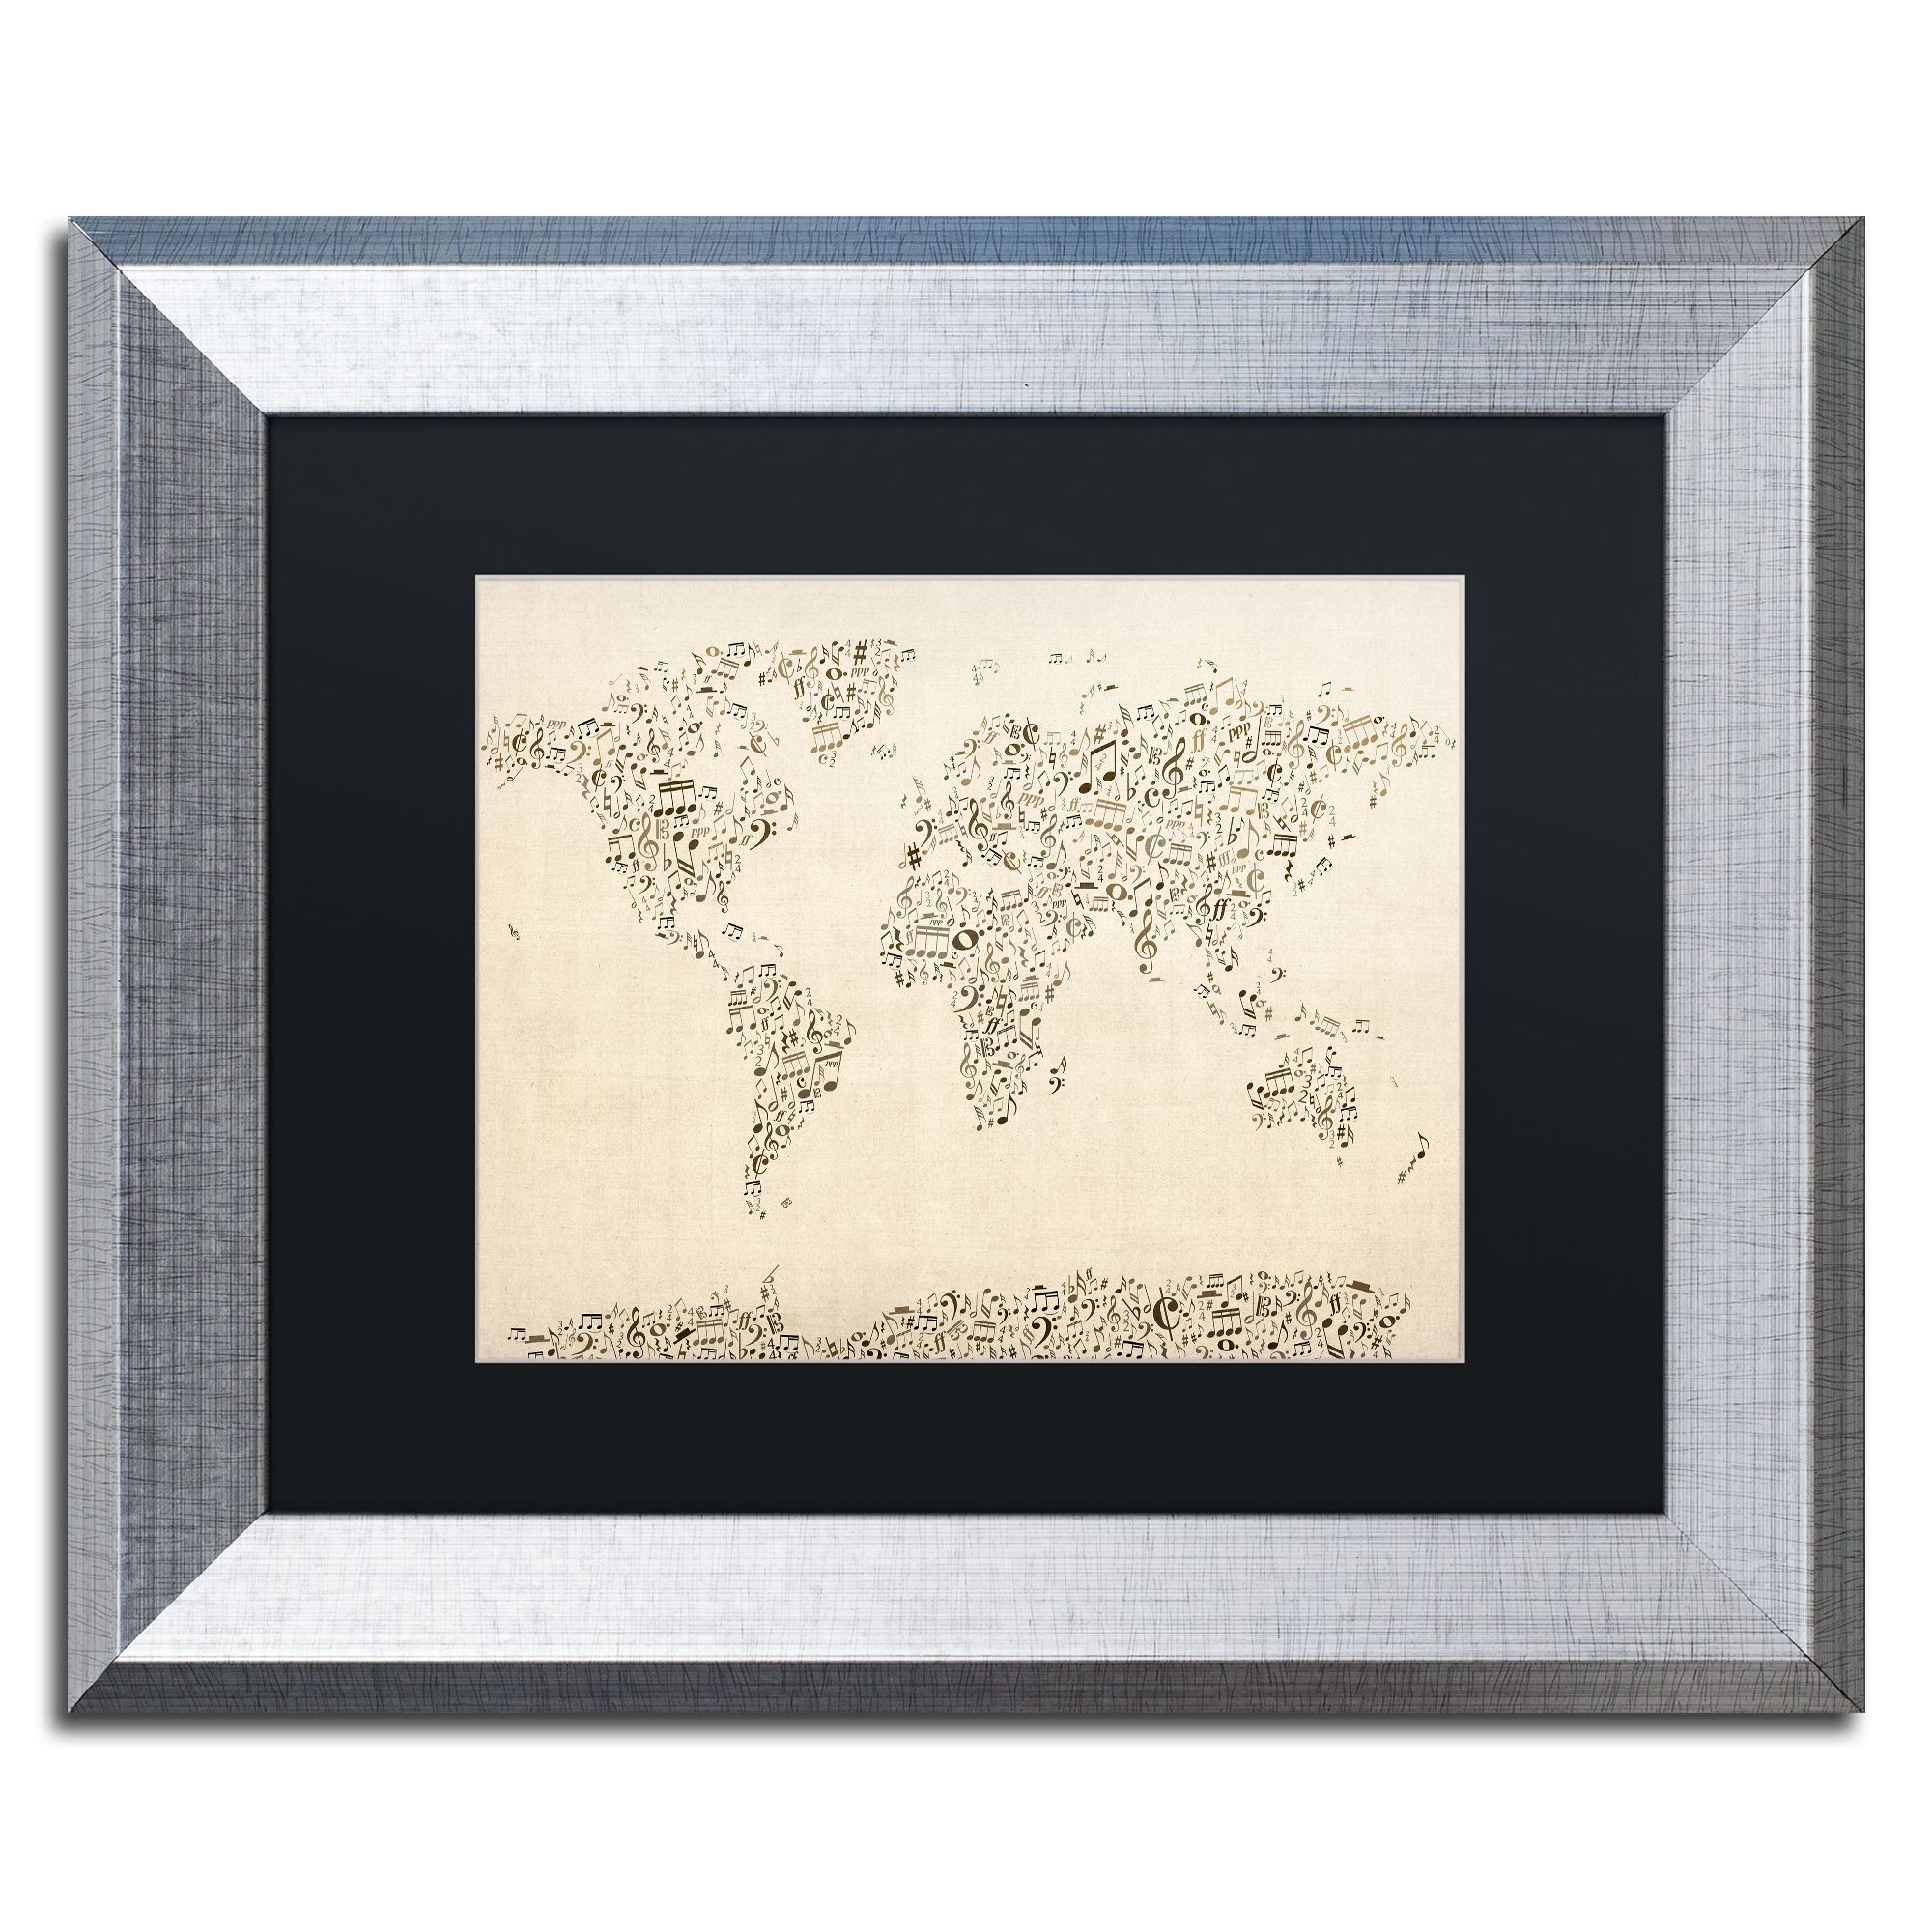 Michael tompsett music note world map black matte framed wall art michael tompsett music note world map black matte gumiabroncs Image collections